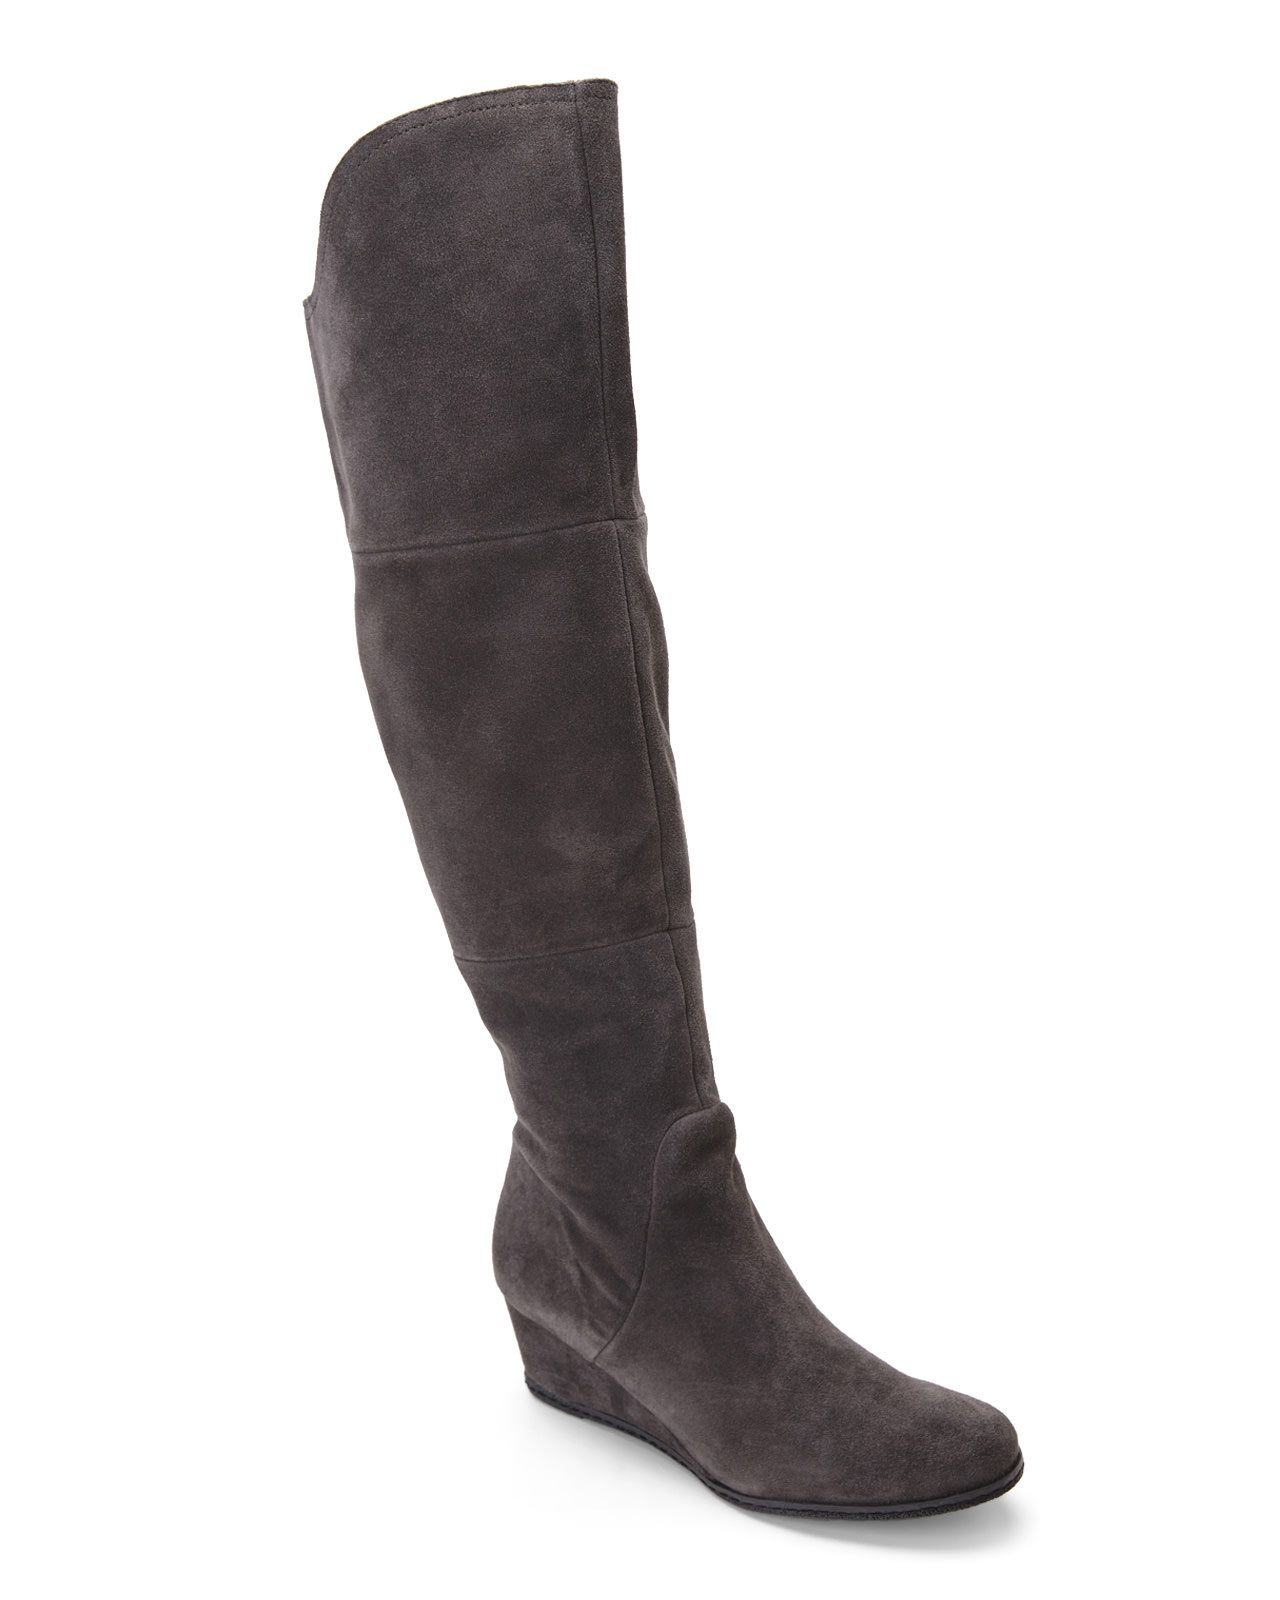 49efed0381d Buying these boots!! Over the knee suede wedge boots